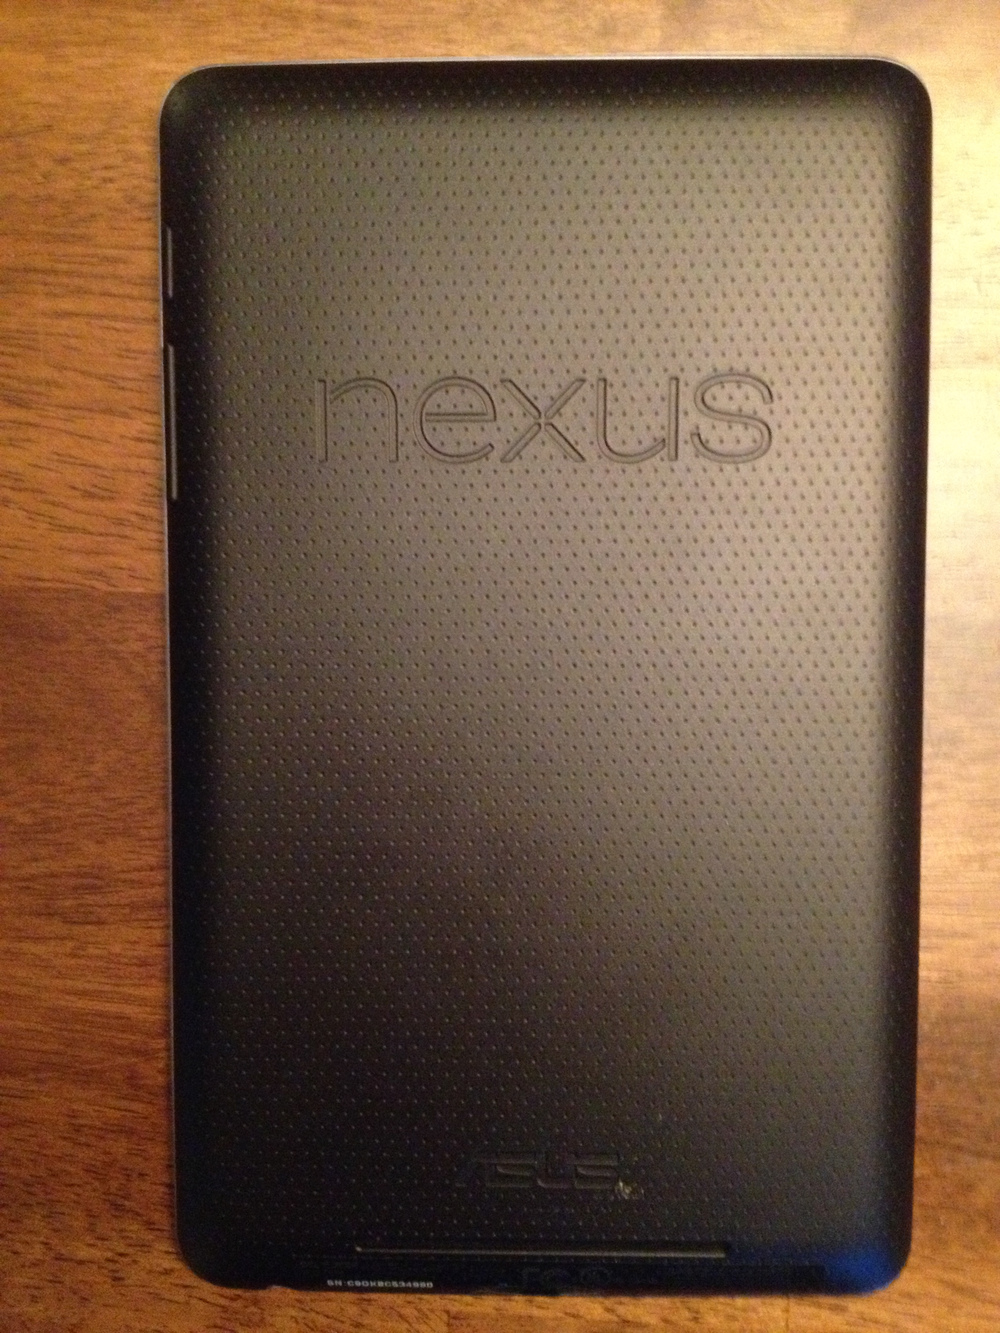 The back of the Nexus 7. Note the Nexus and Asus branding.